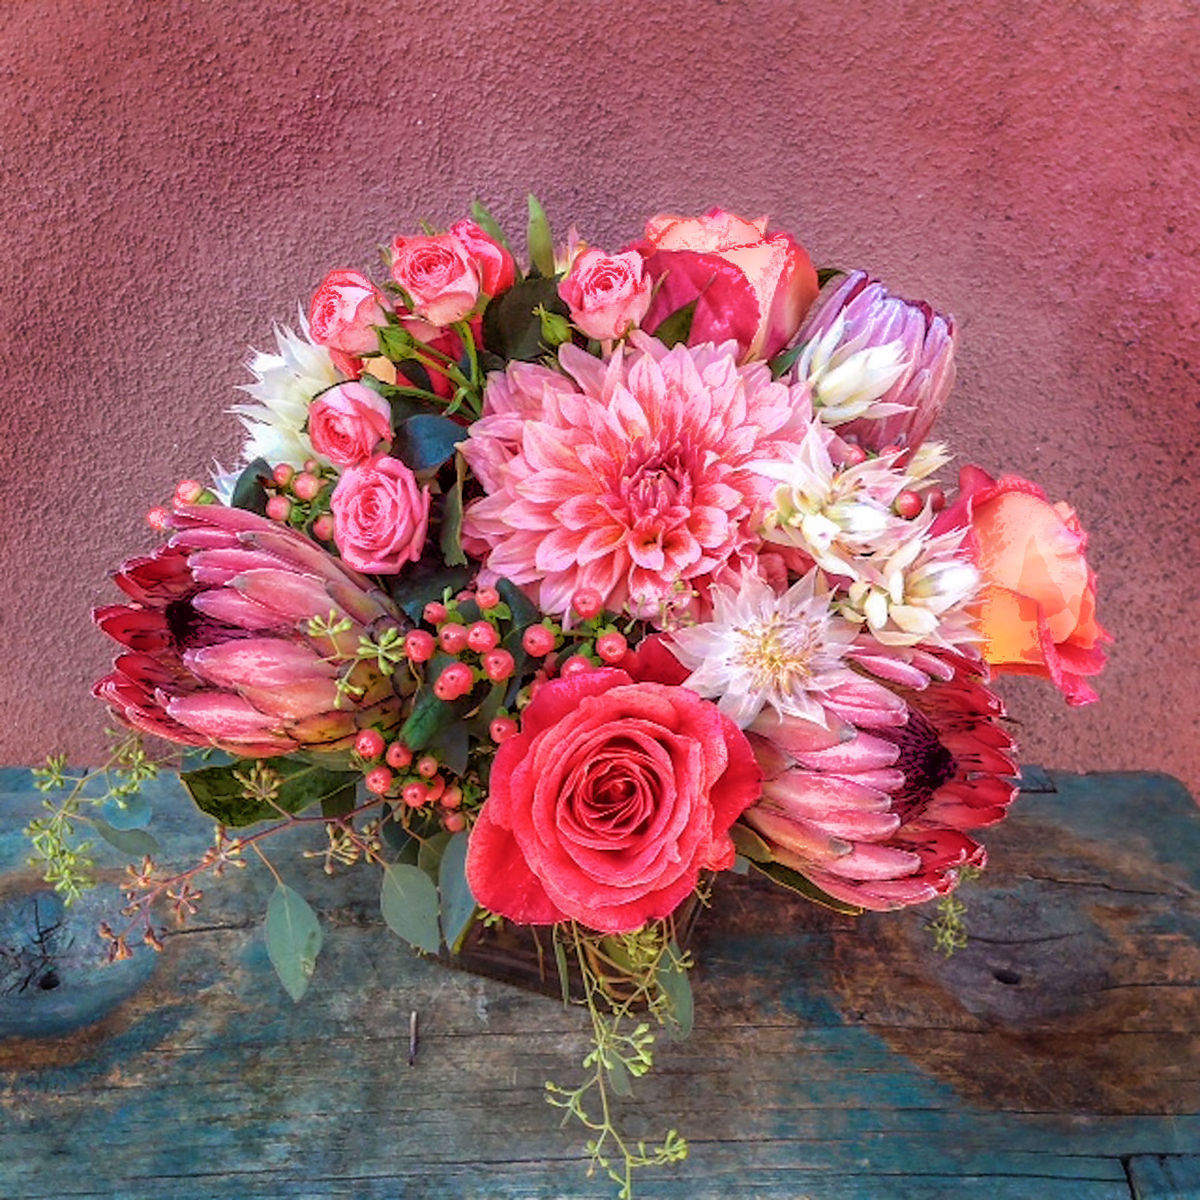 Albuquerque Wedding Florists - Reviews for 23 Florists